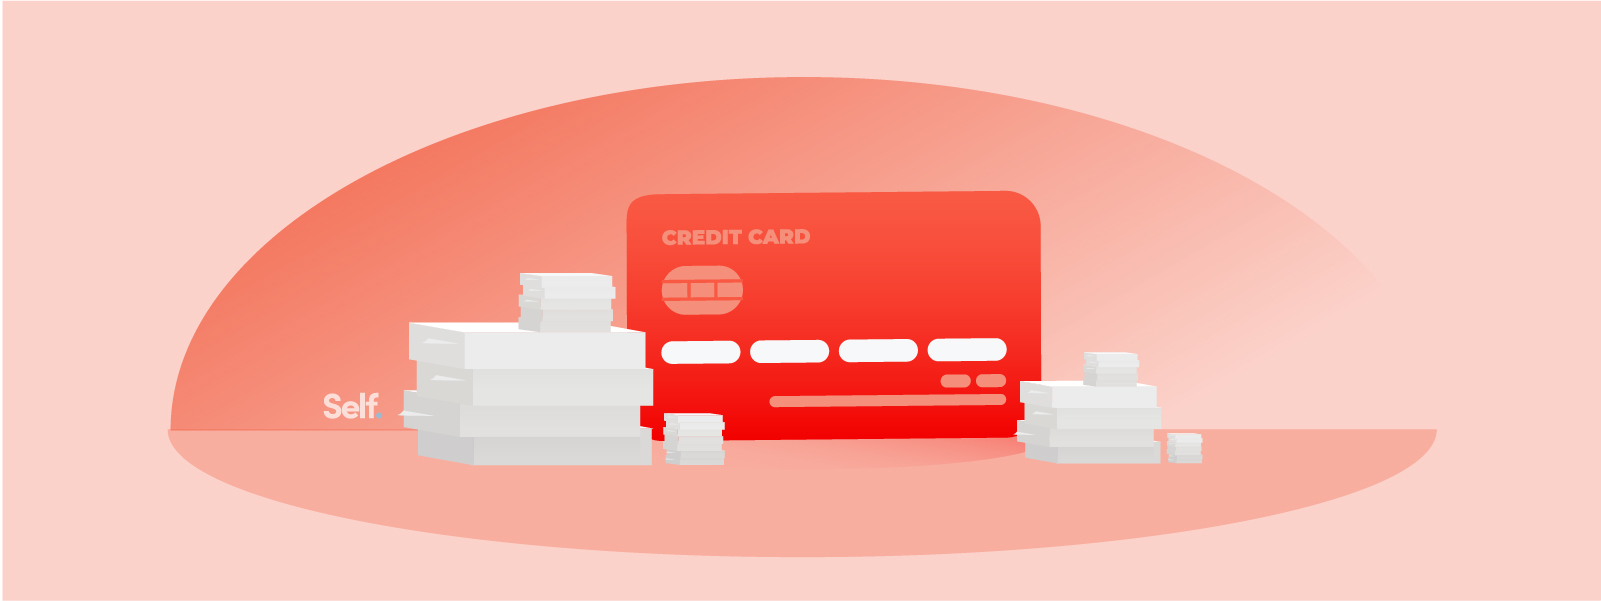 Avoiding interest and debt on a credit card